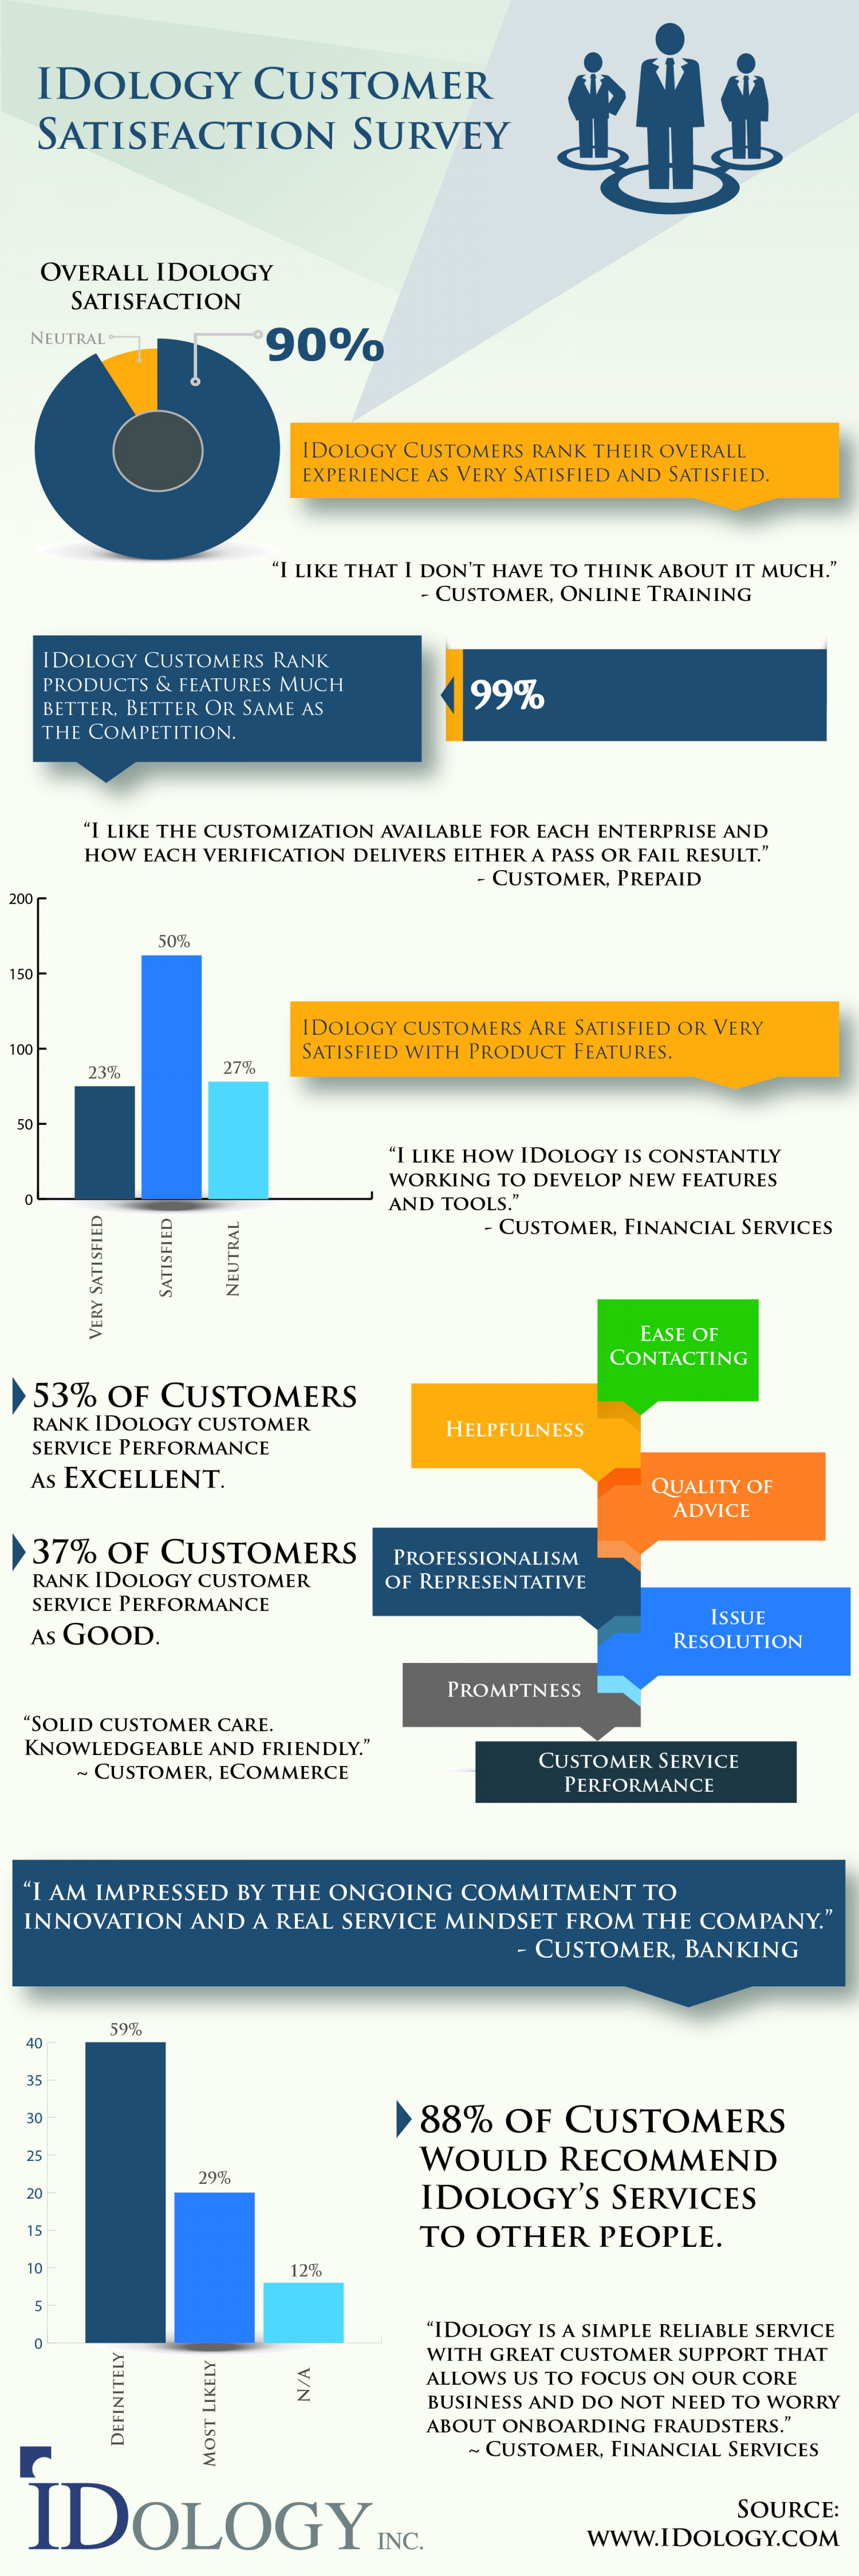 IDology Customer Satisfaction Survey Infographic